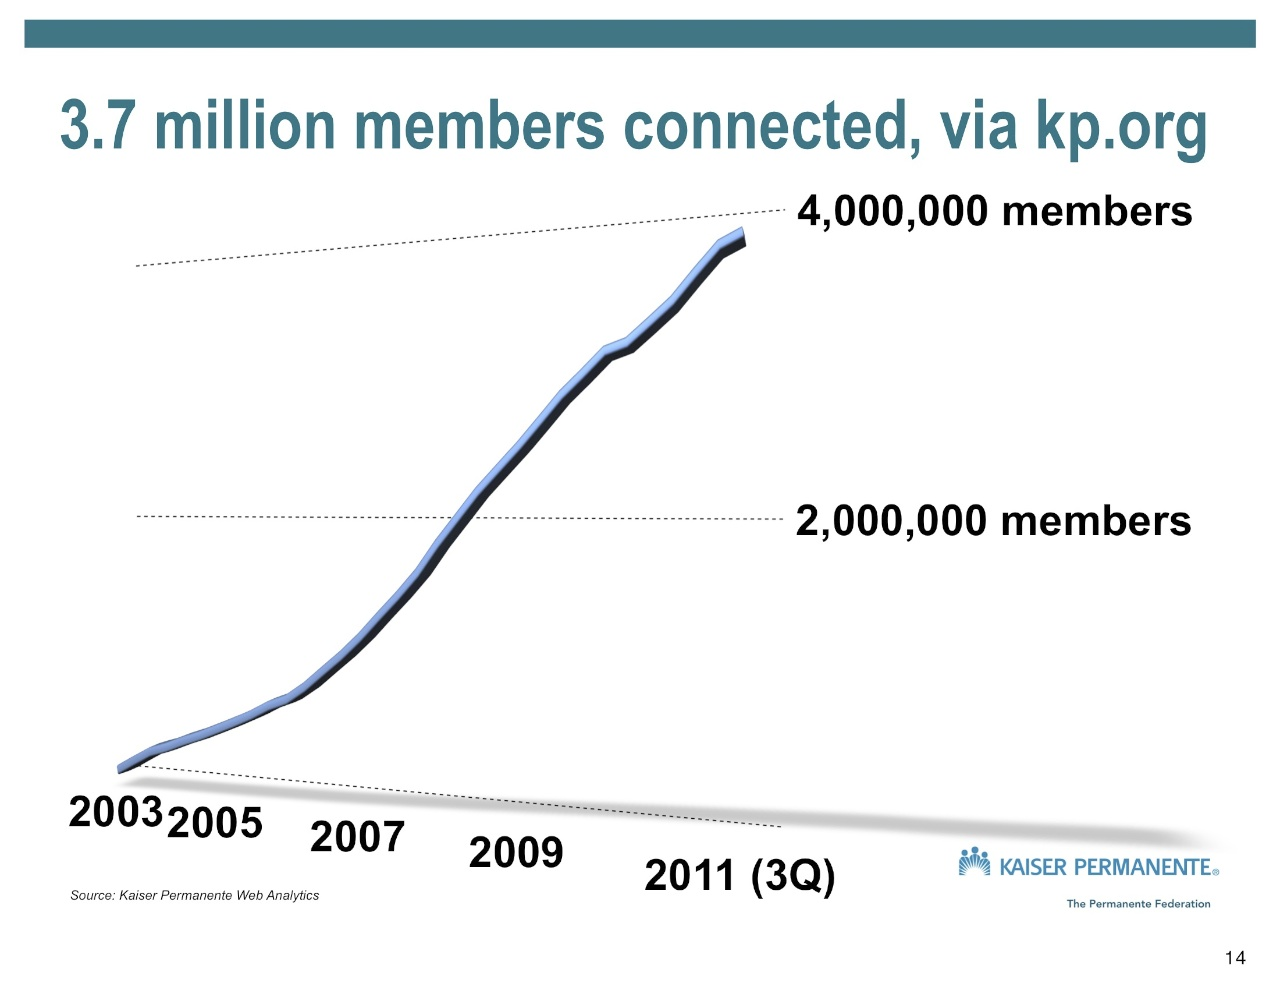 Trajectory of kp.org